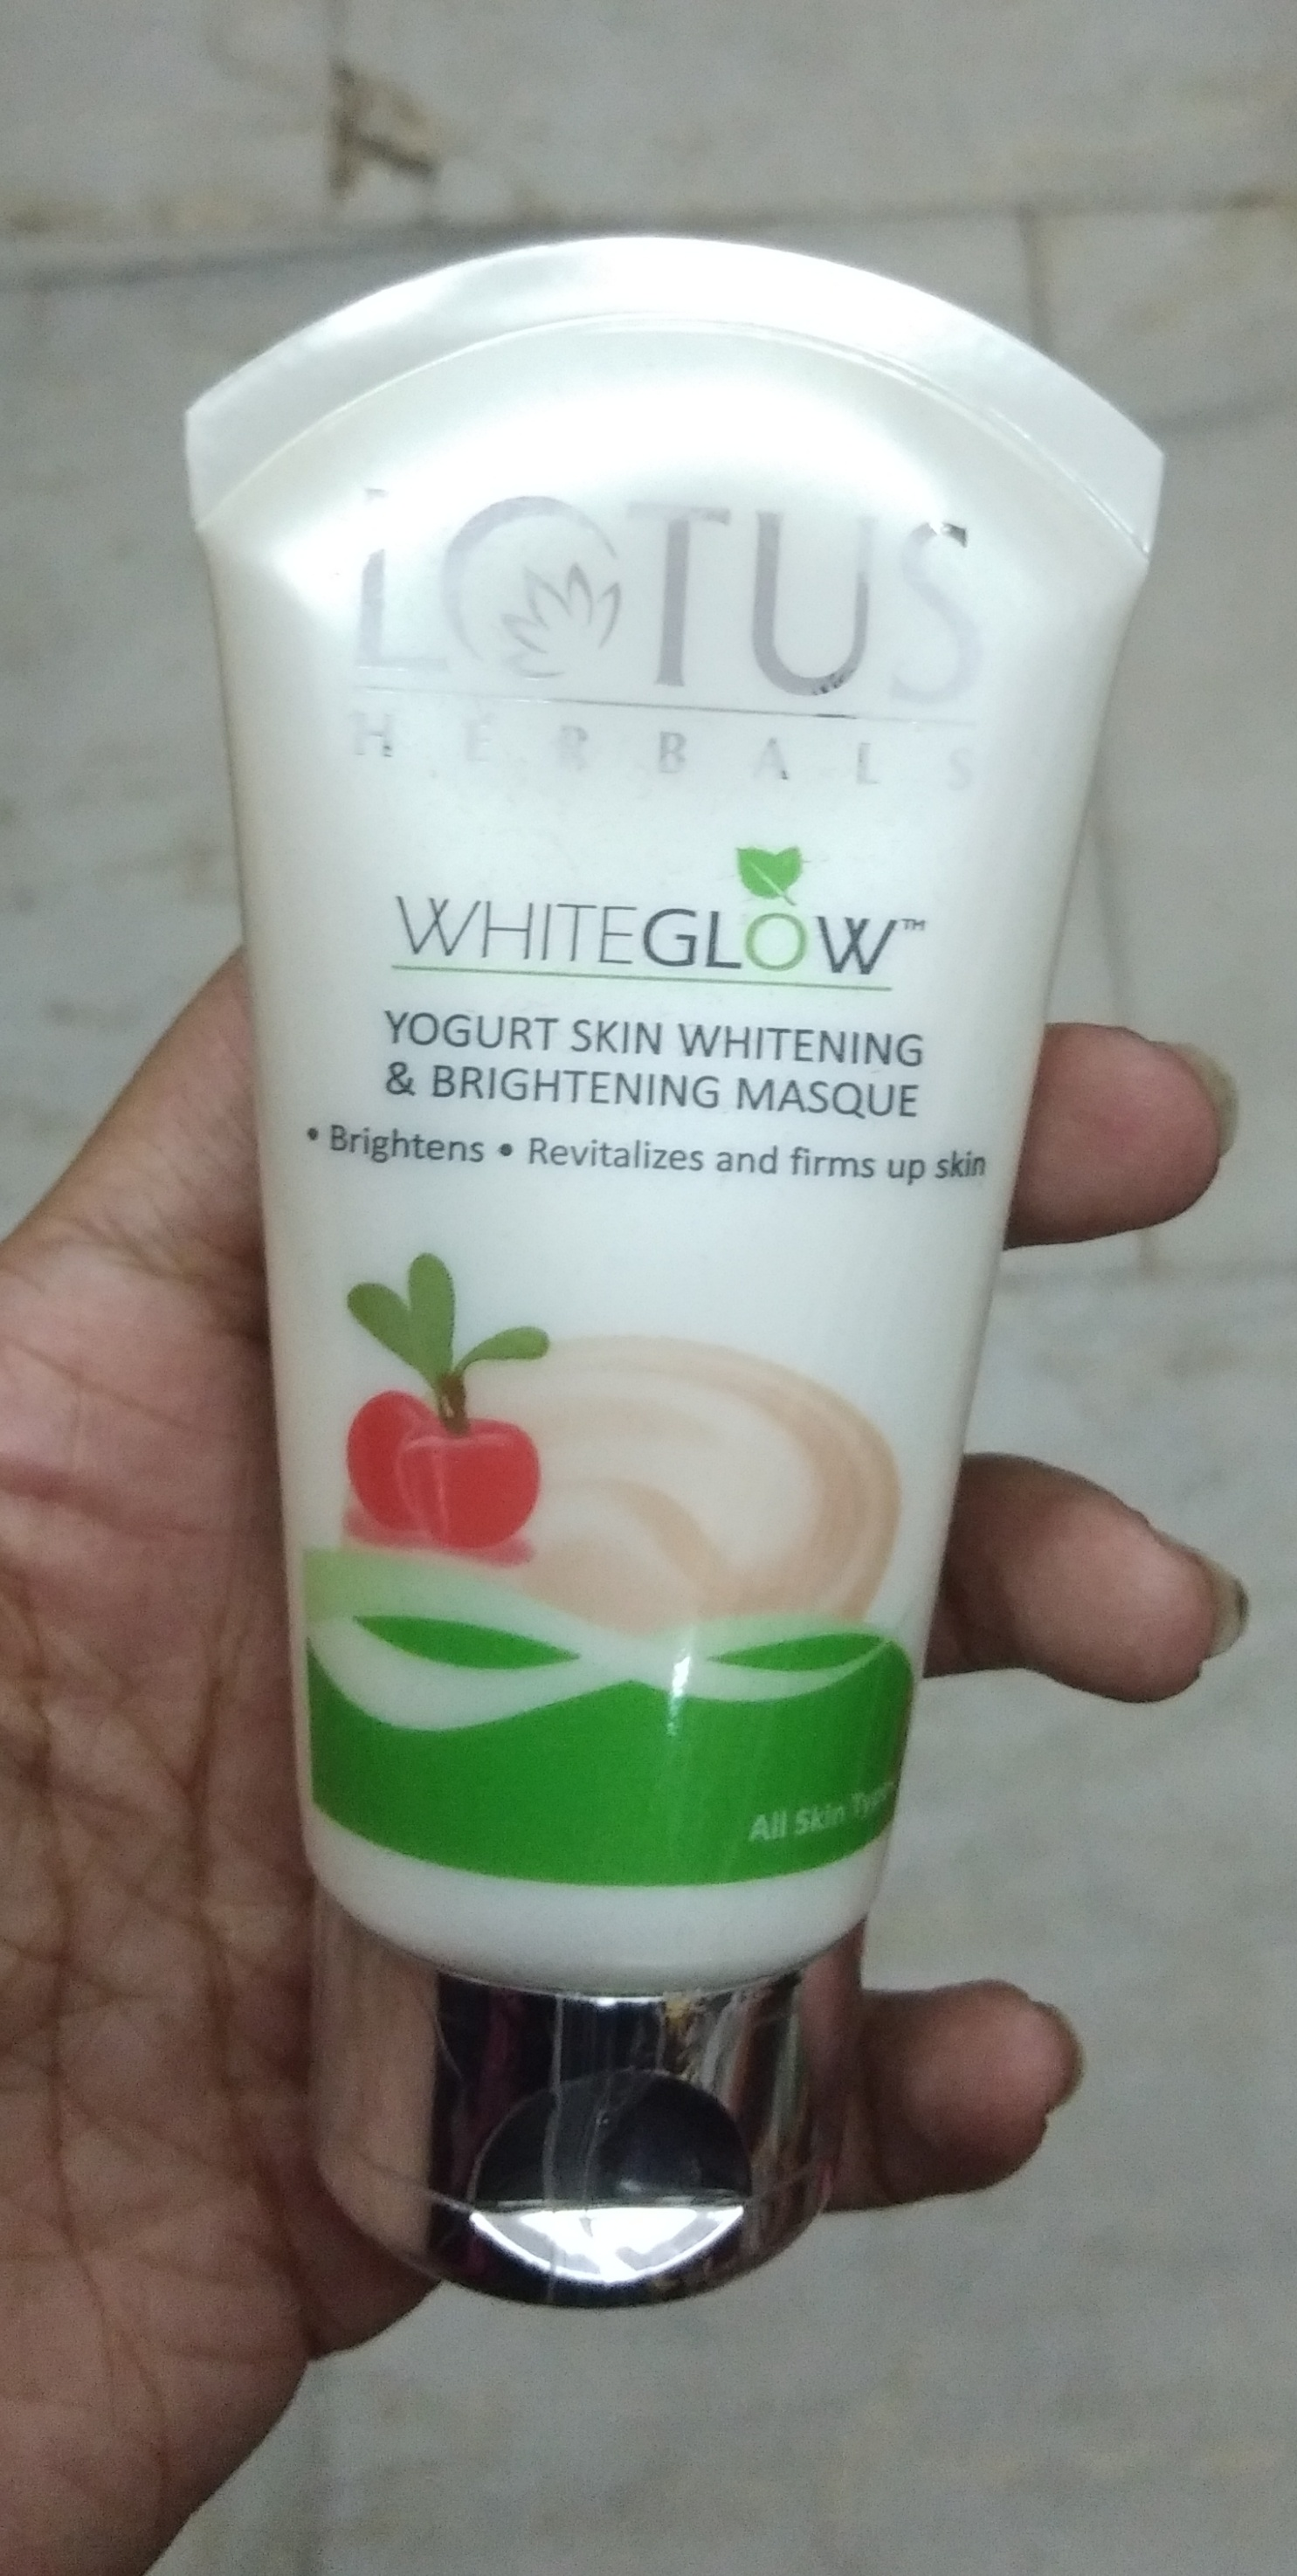 Lotus Herbals Whiteglow Yogurt Skin Whitening & Brightening Masque pic 1-Worth a try-By Nasreen